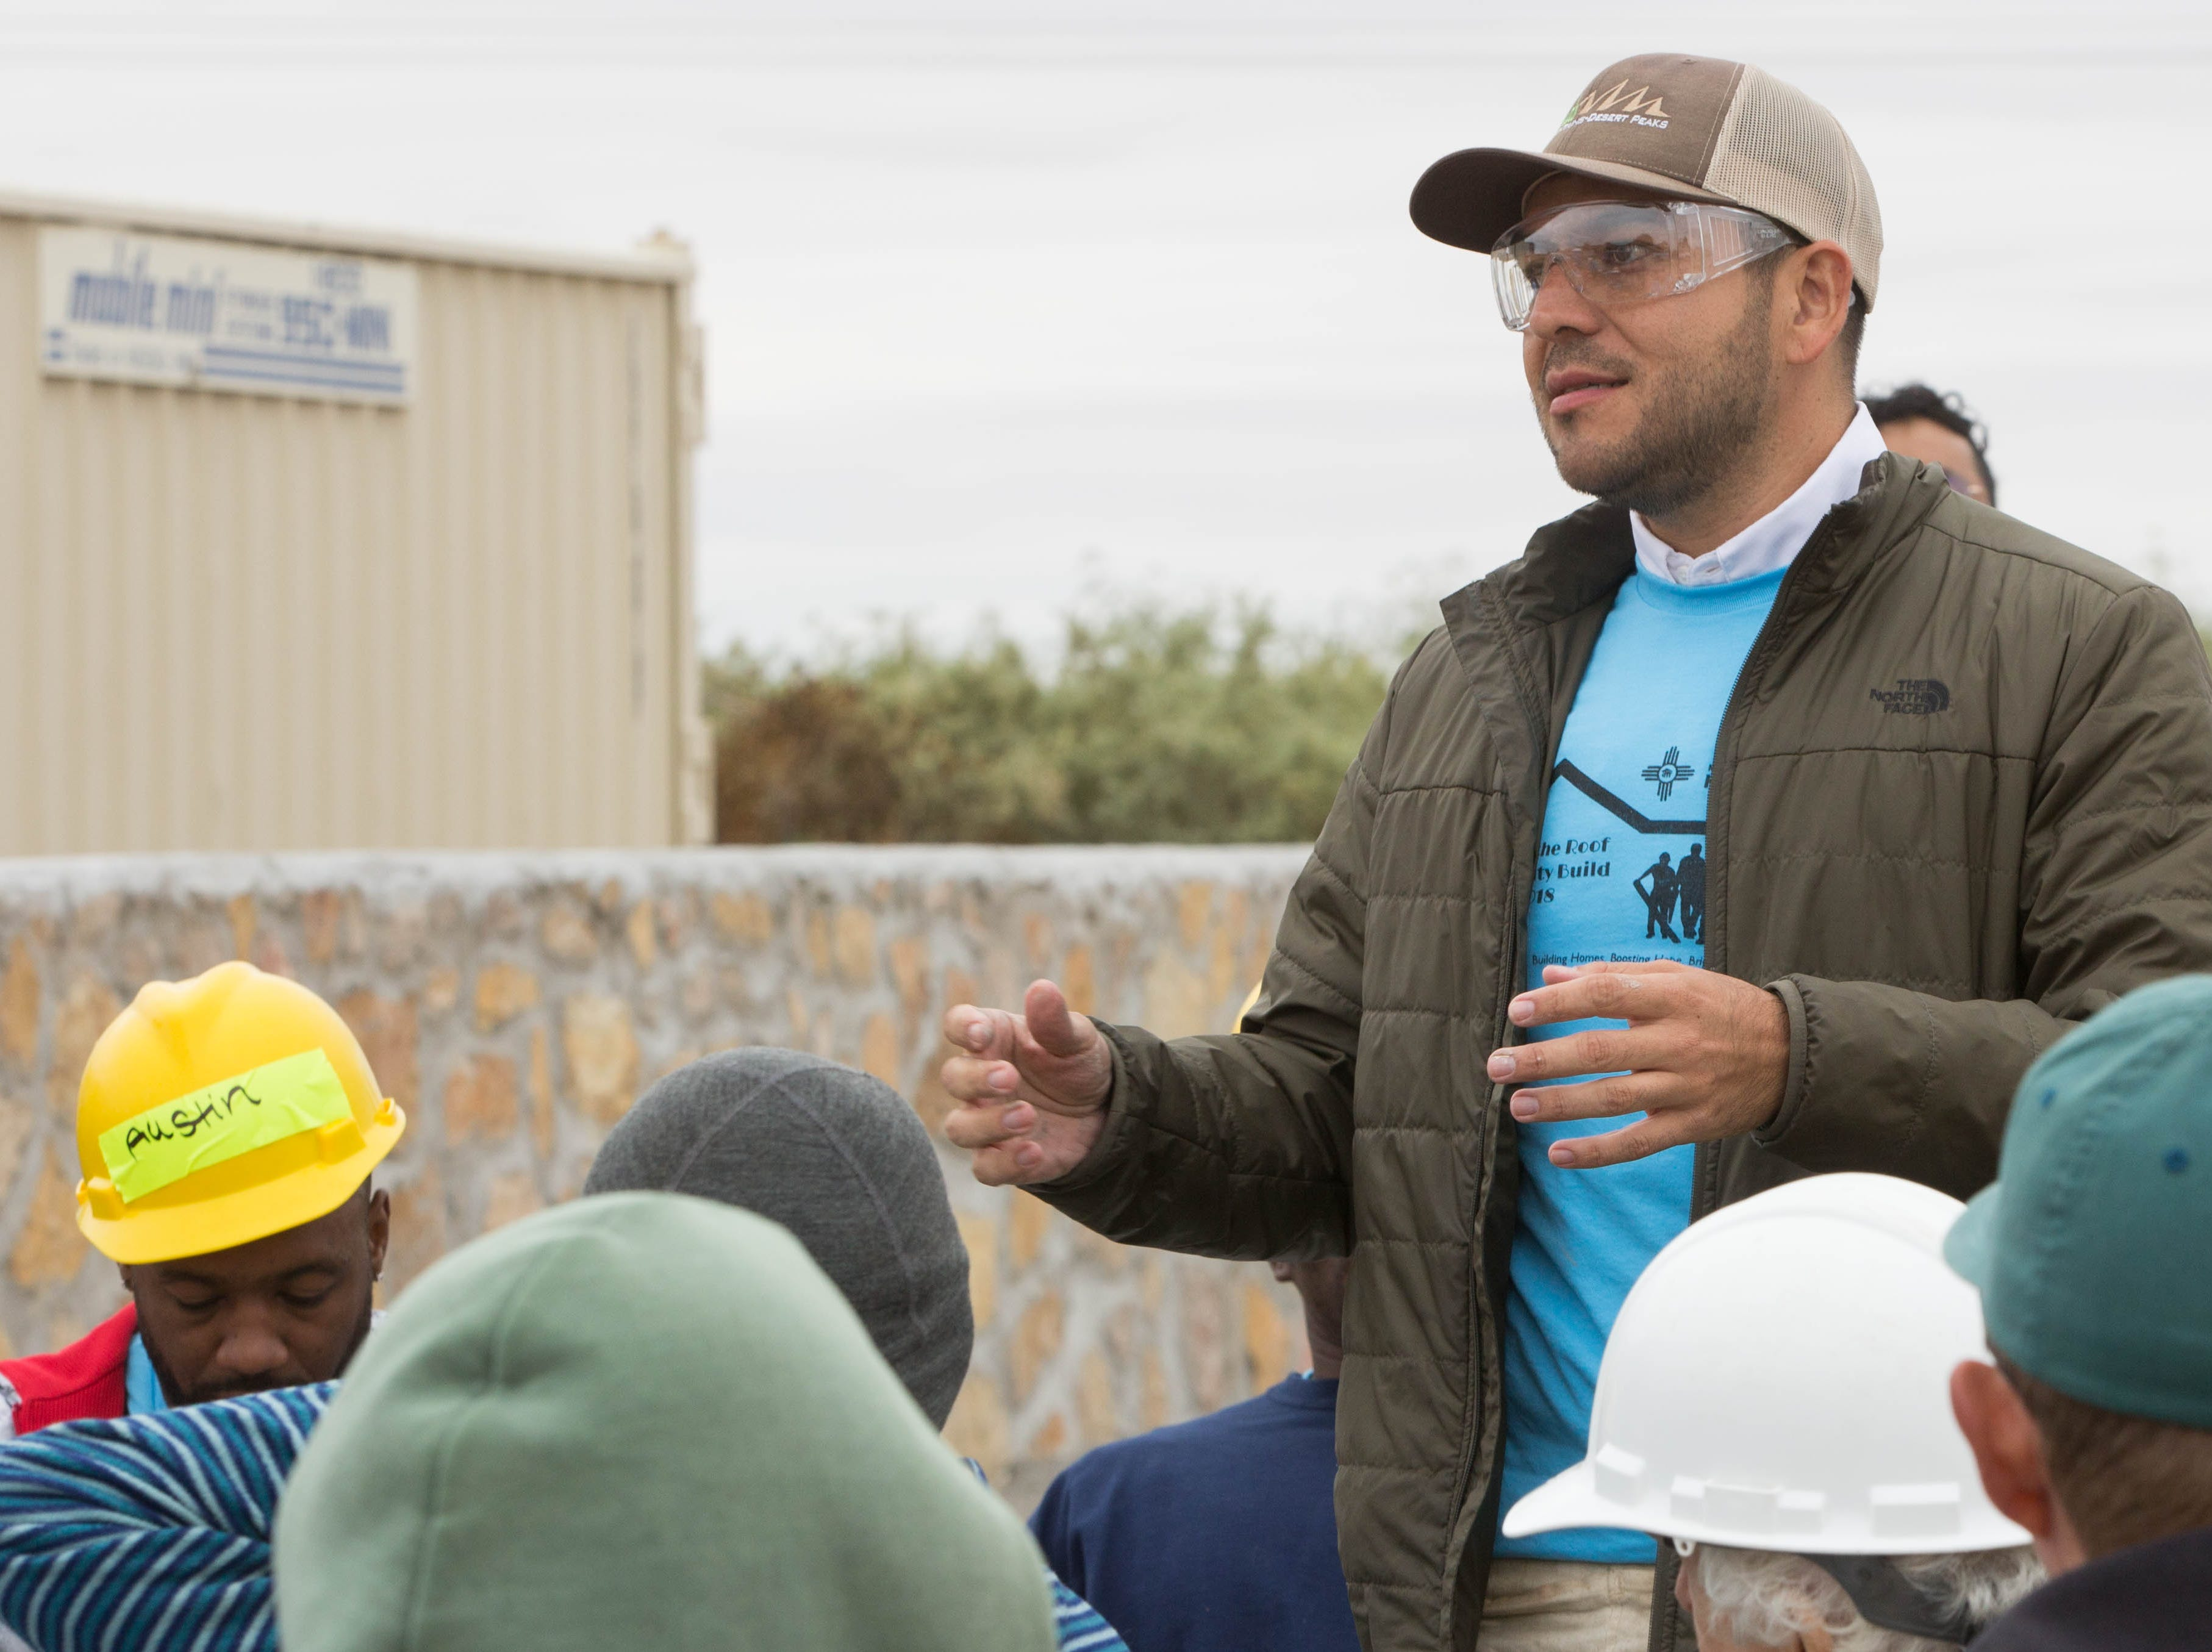 Gabe Vasquez, district 3 city councilor, along with a few other local celebrities that joined other volunteers at the Habitat for Humanity build site on Aurora Star Court, Wednesday October 17, 2018.